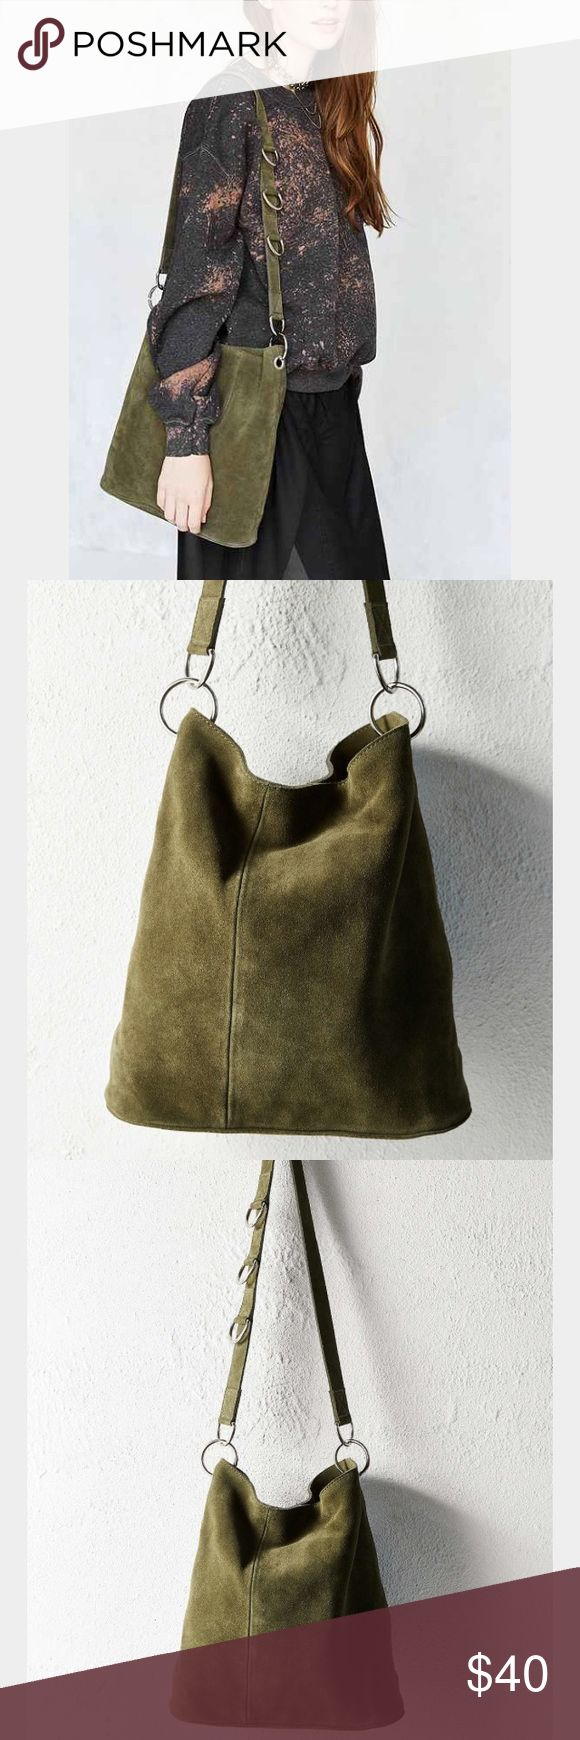 New! UO Suede Tote Bag Green tote bag from urban outfitters. NWT! Real suede Urban Outfitters Bags